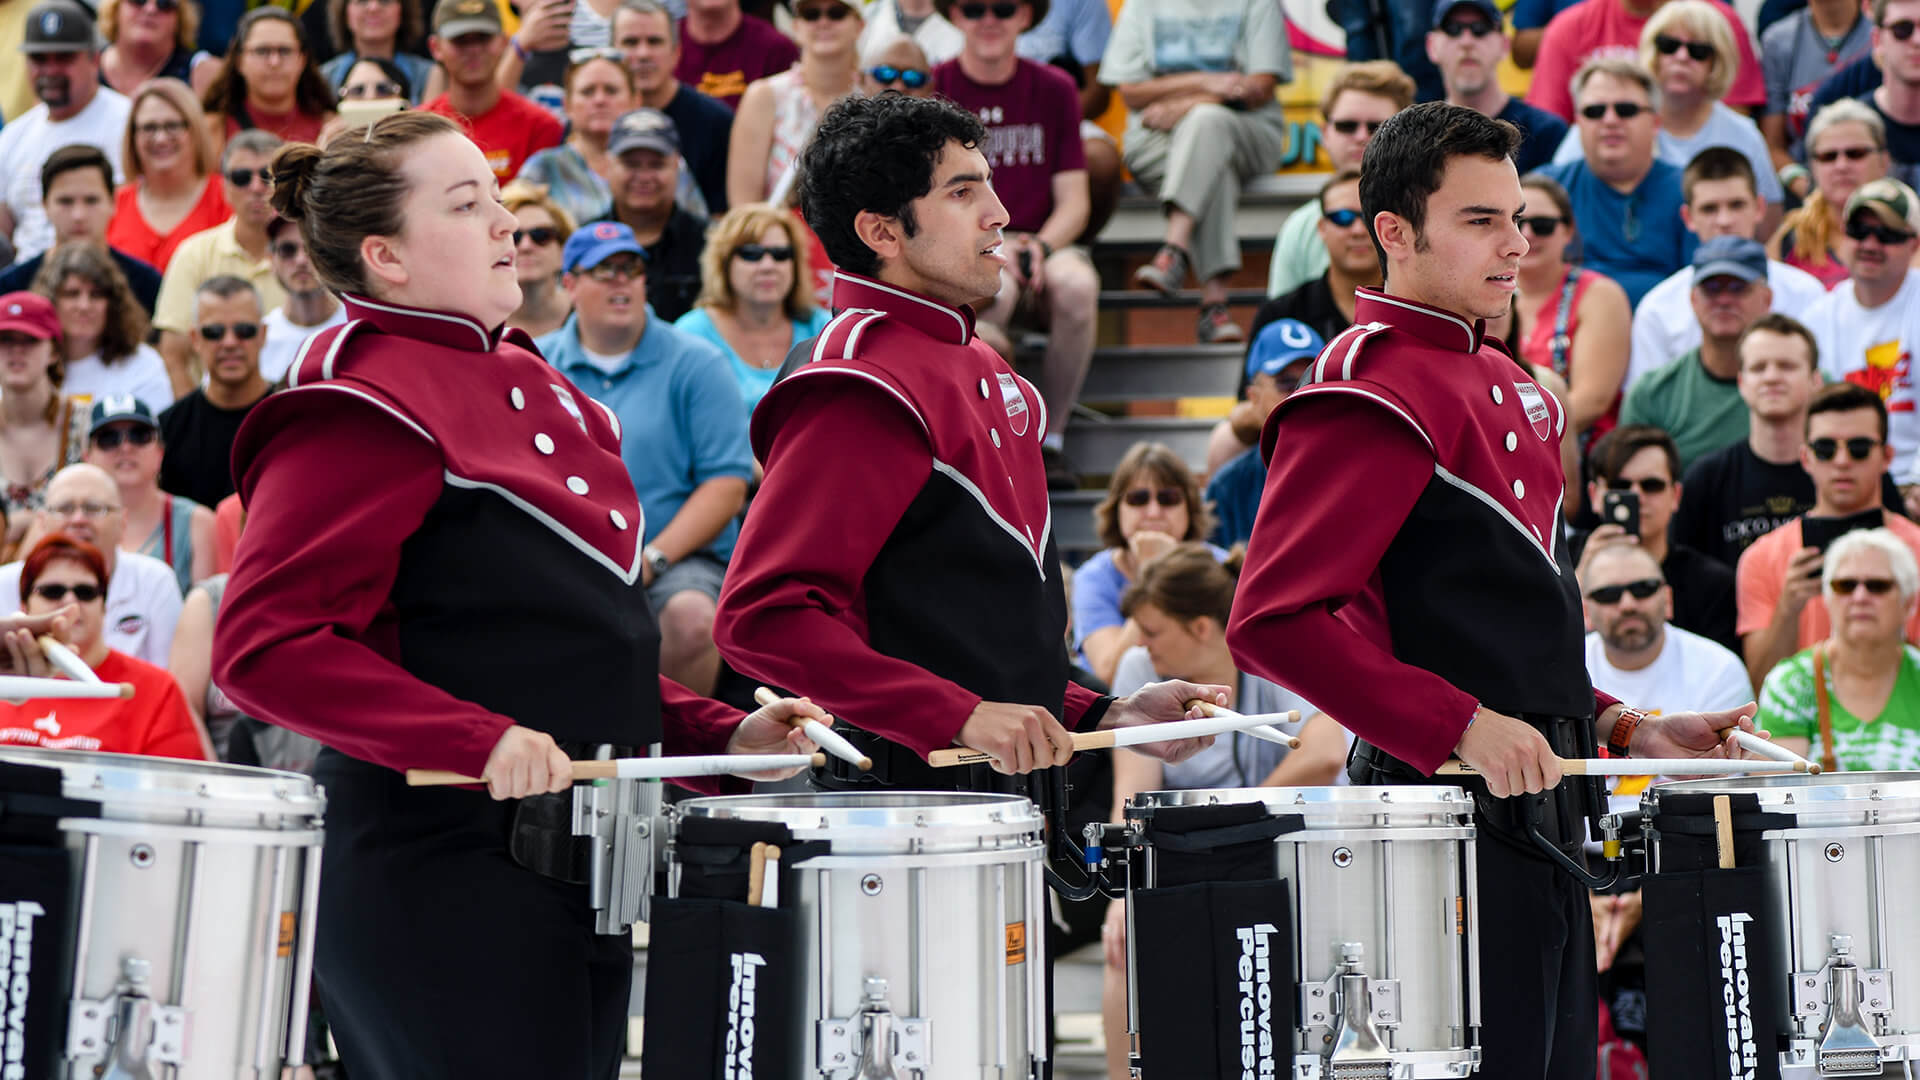 DrumLine Battle: McMaster Marching Band vs. THE COMPANY